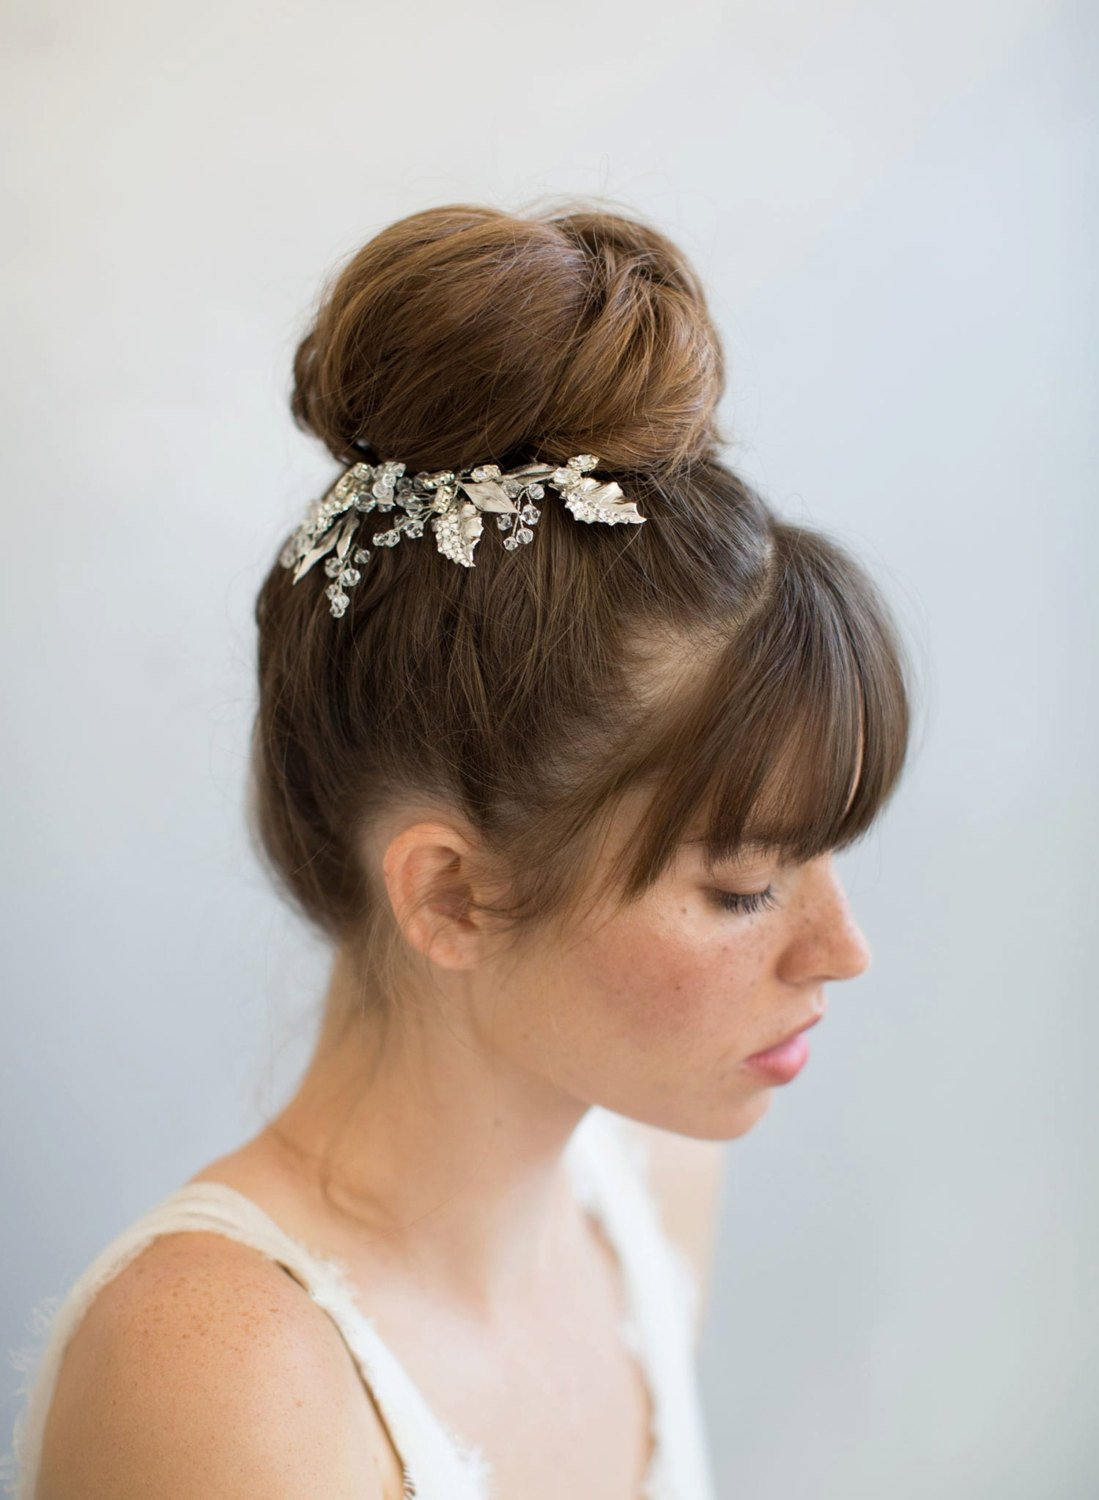 Bridal hair pins Shimmer and shine leaf hair pins top knot bridal hair style.jpg